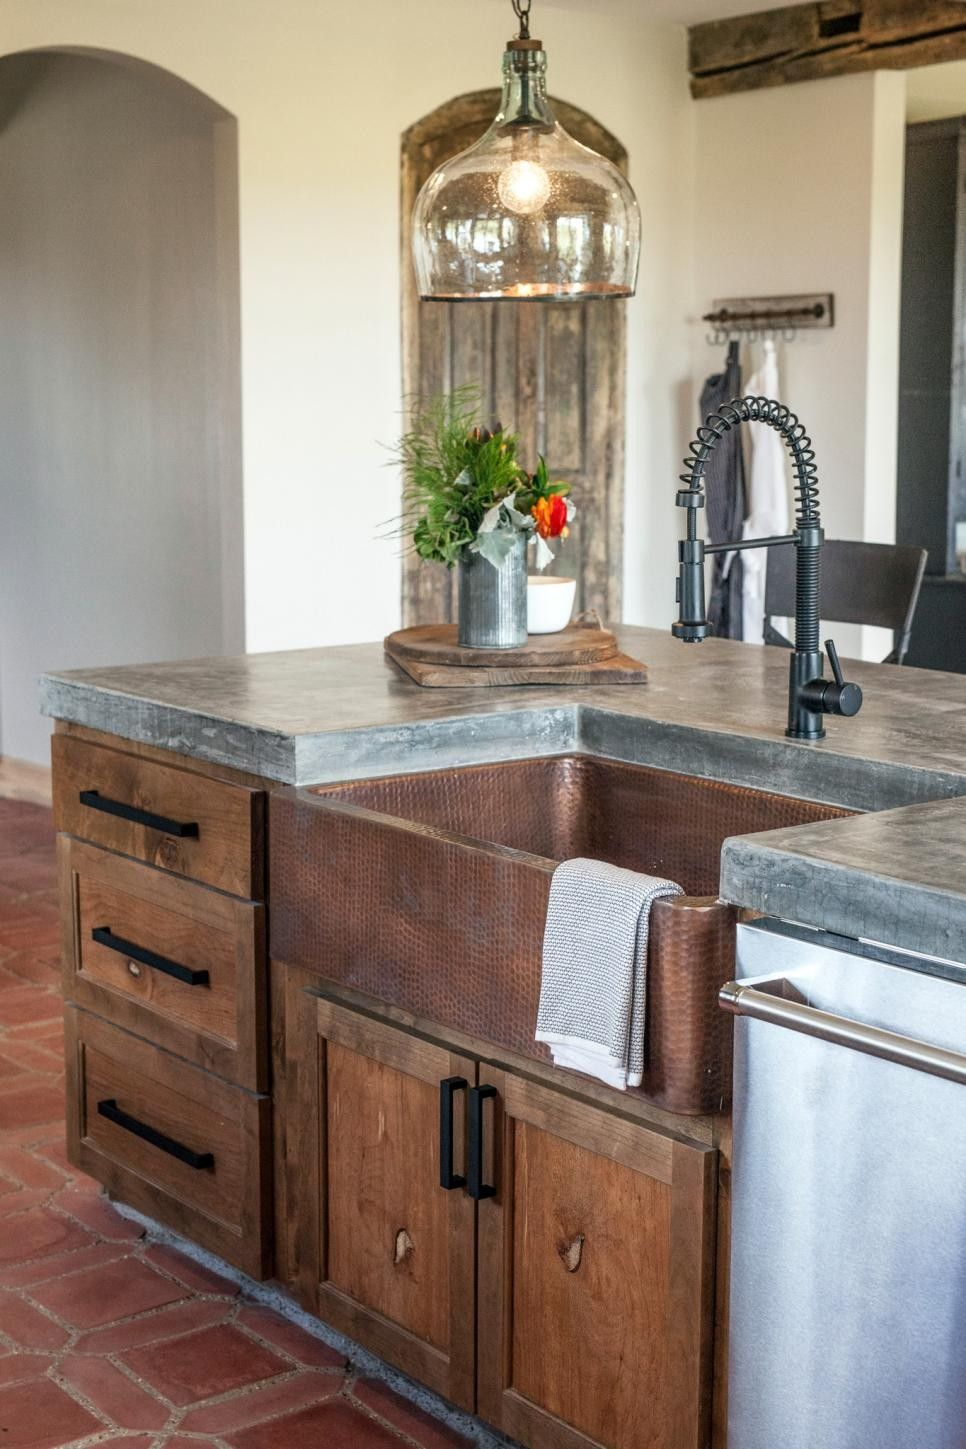 Pin By Jessica Vulte On Home Rustic Kitchen Design Concrete